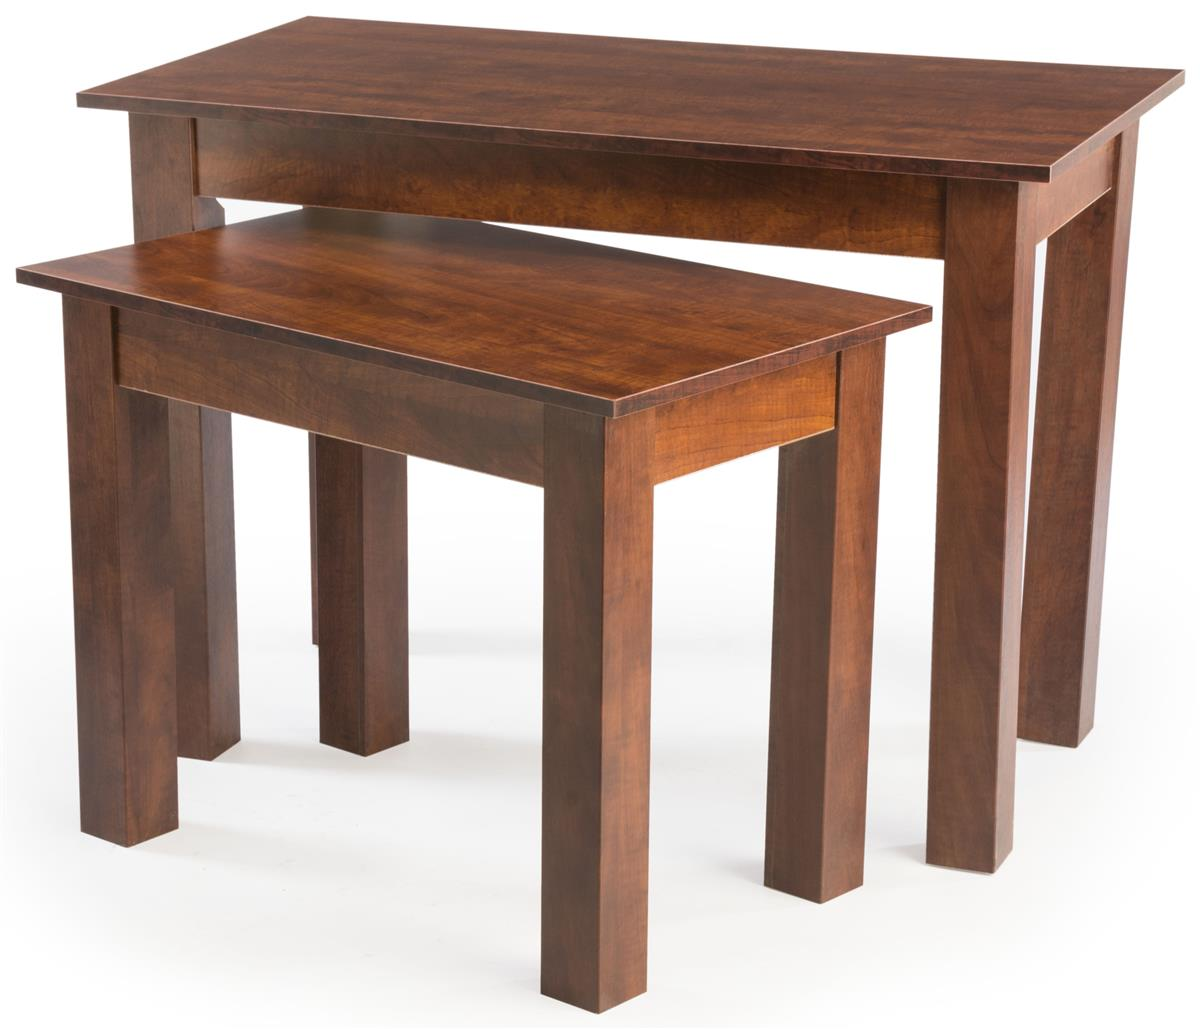 Cherry wood nesting tables set of with faux wooden finish